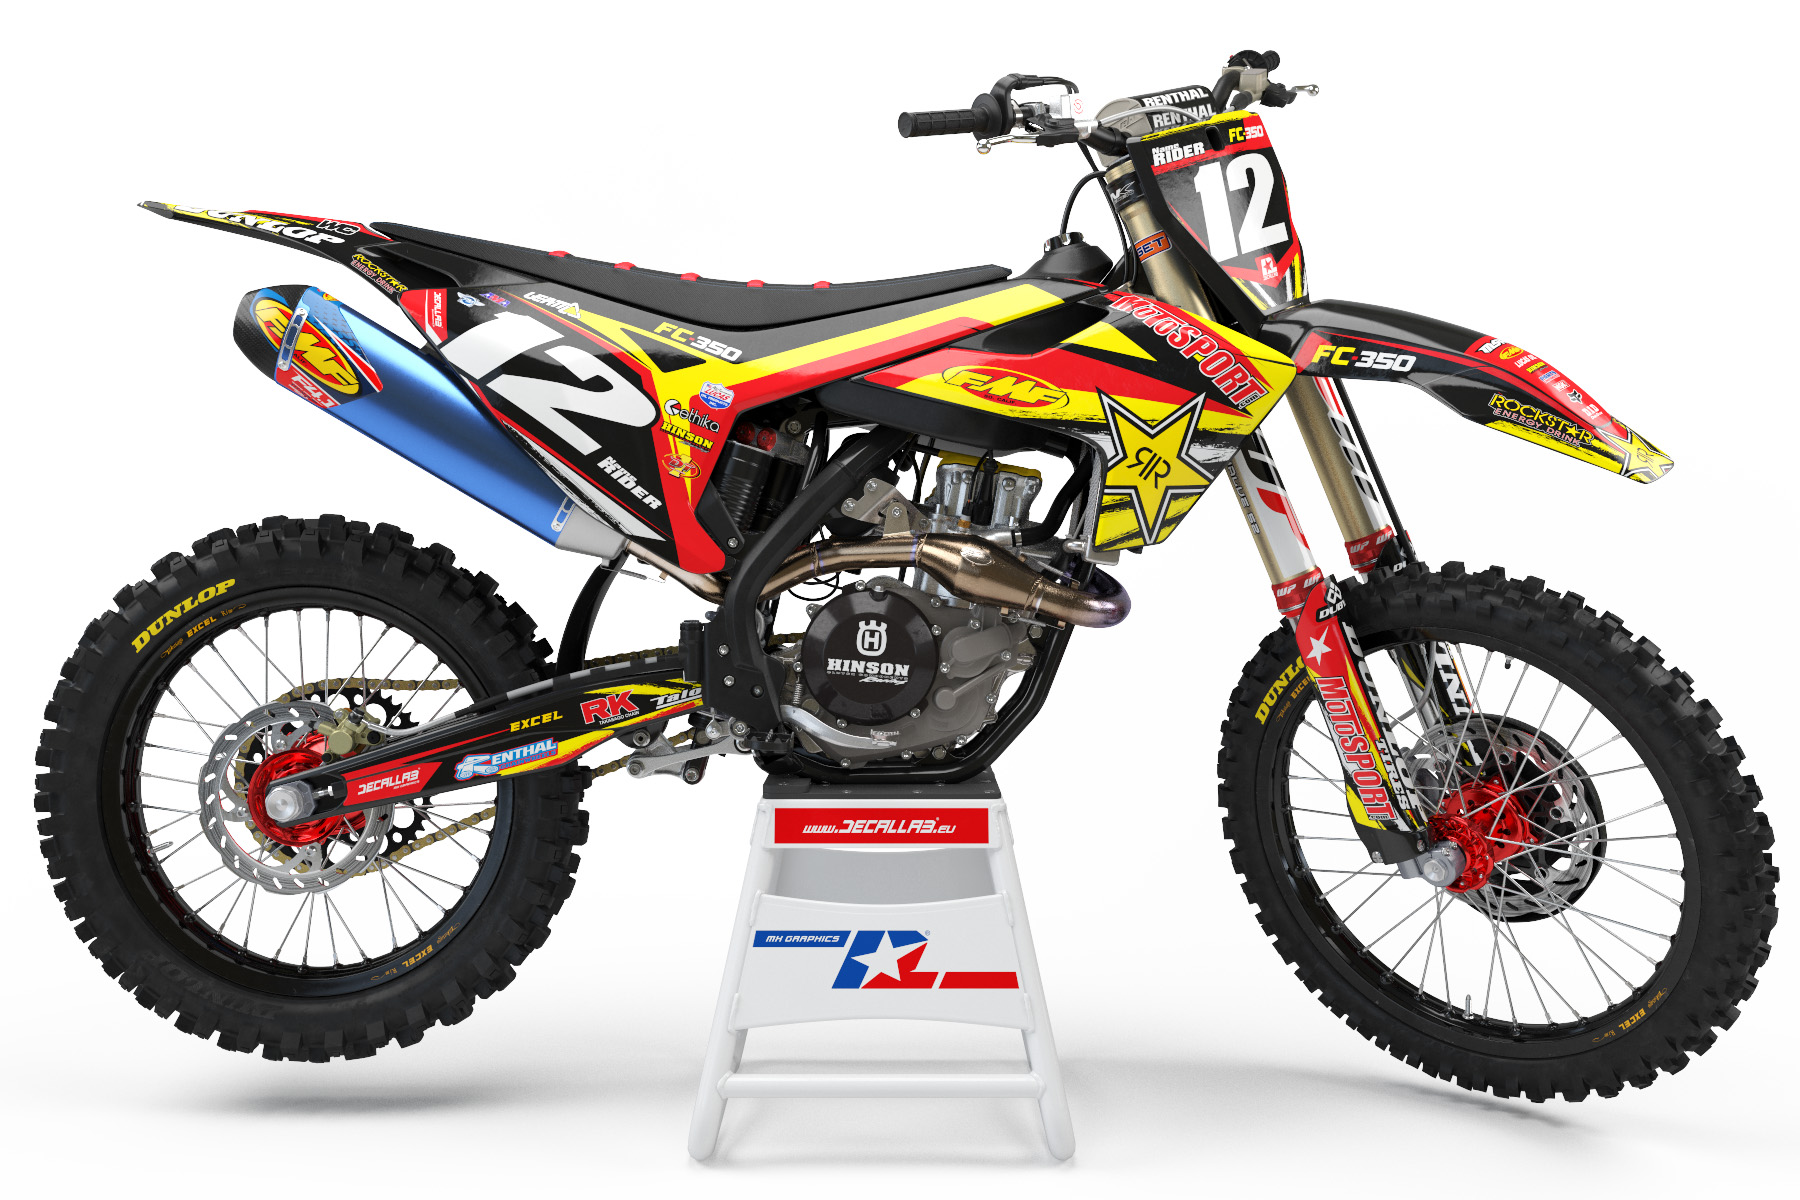 rock star mx declas stickers graphics motocross racing suzuki ktm yamaha husqvarna honda kawasaki design